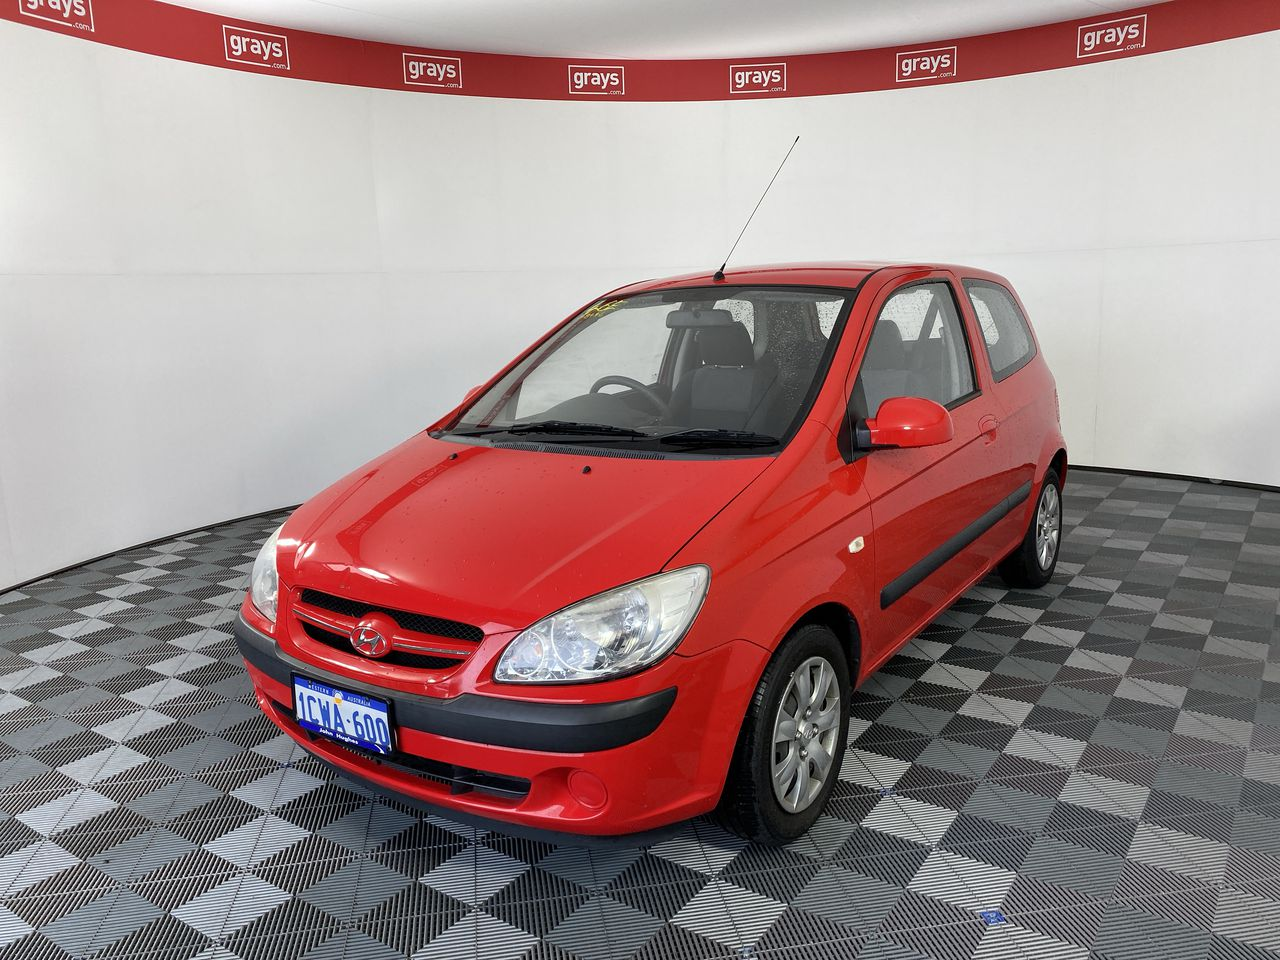 2008 Hyundai Getz S TB Manual Hatchback